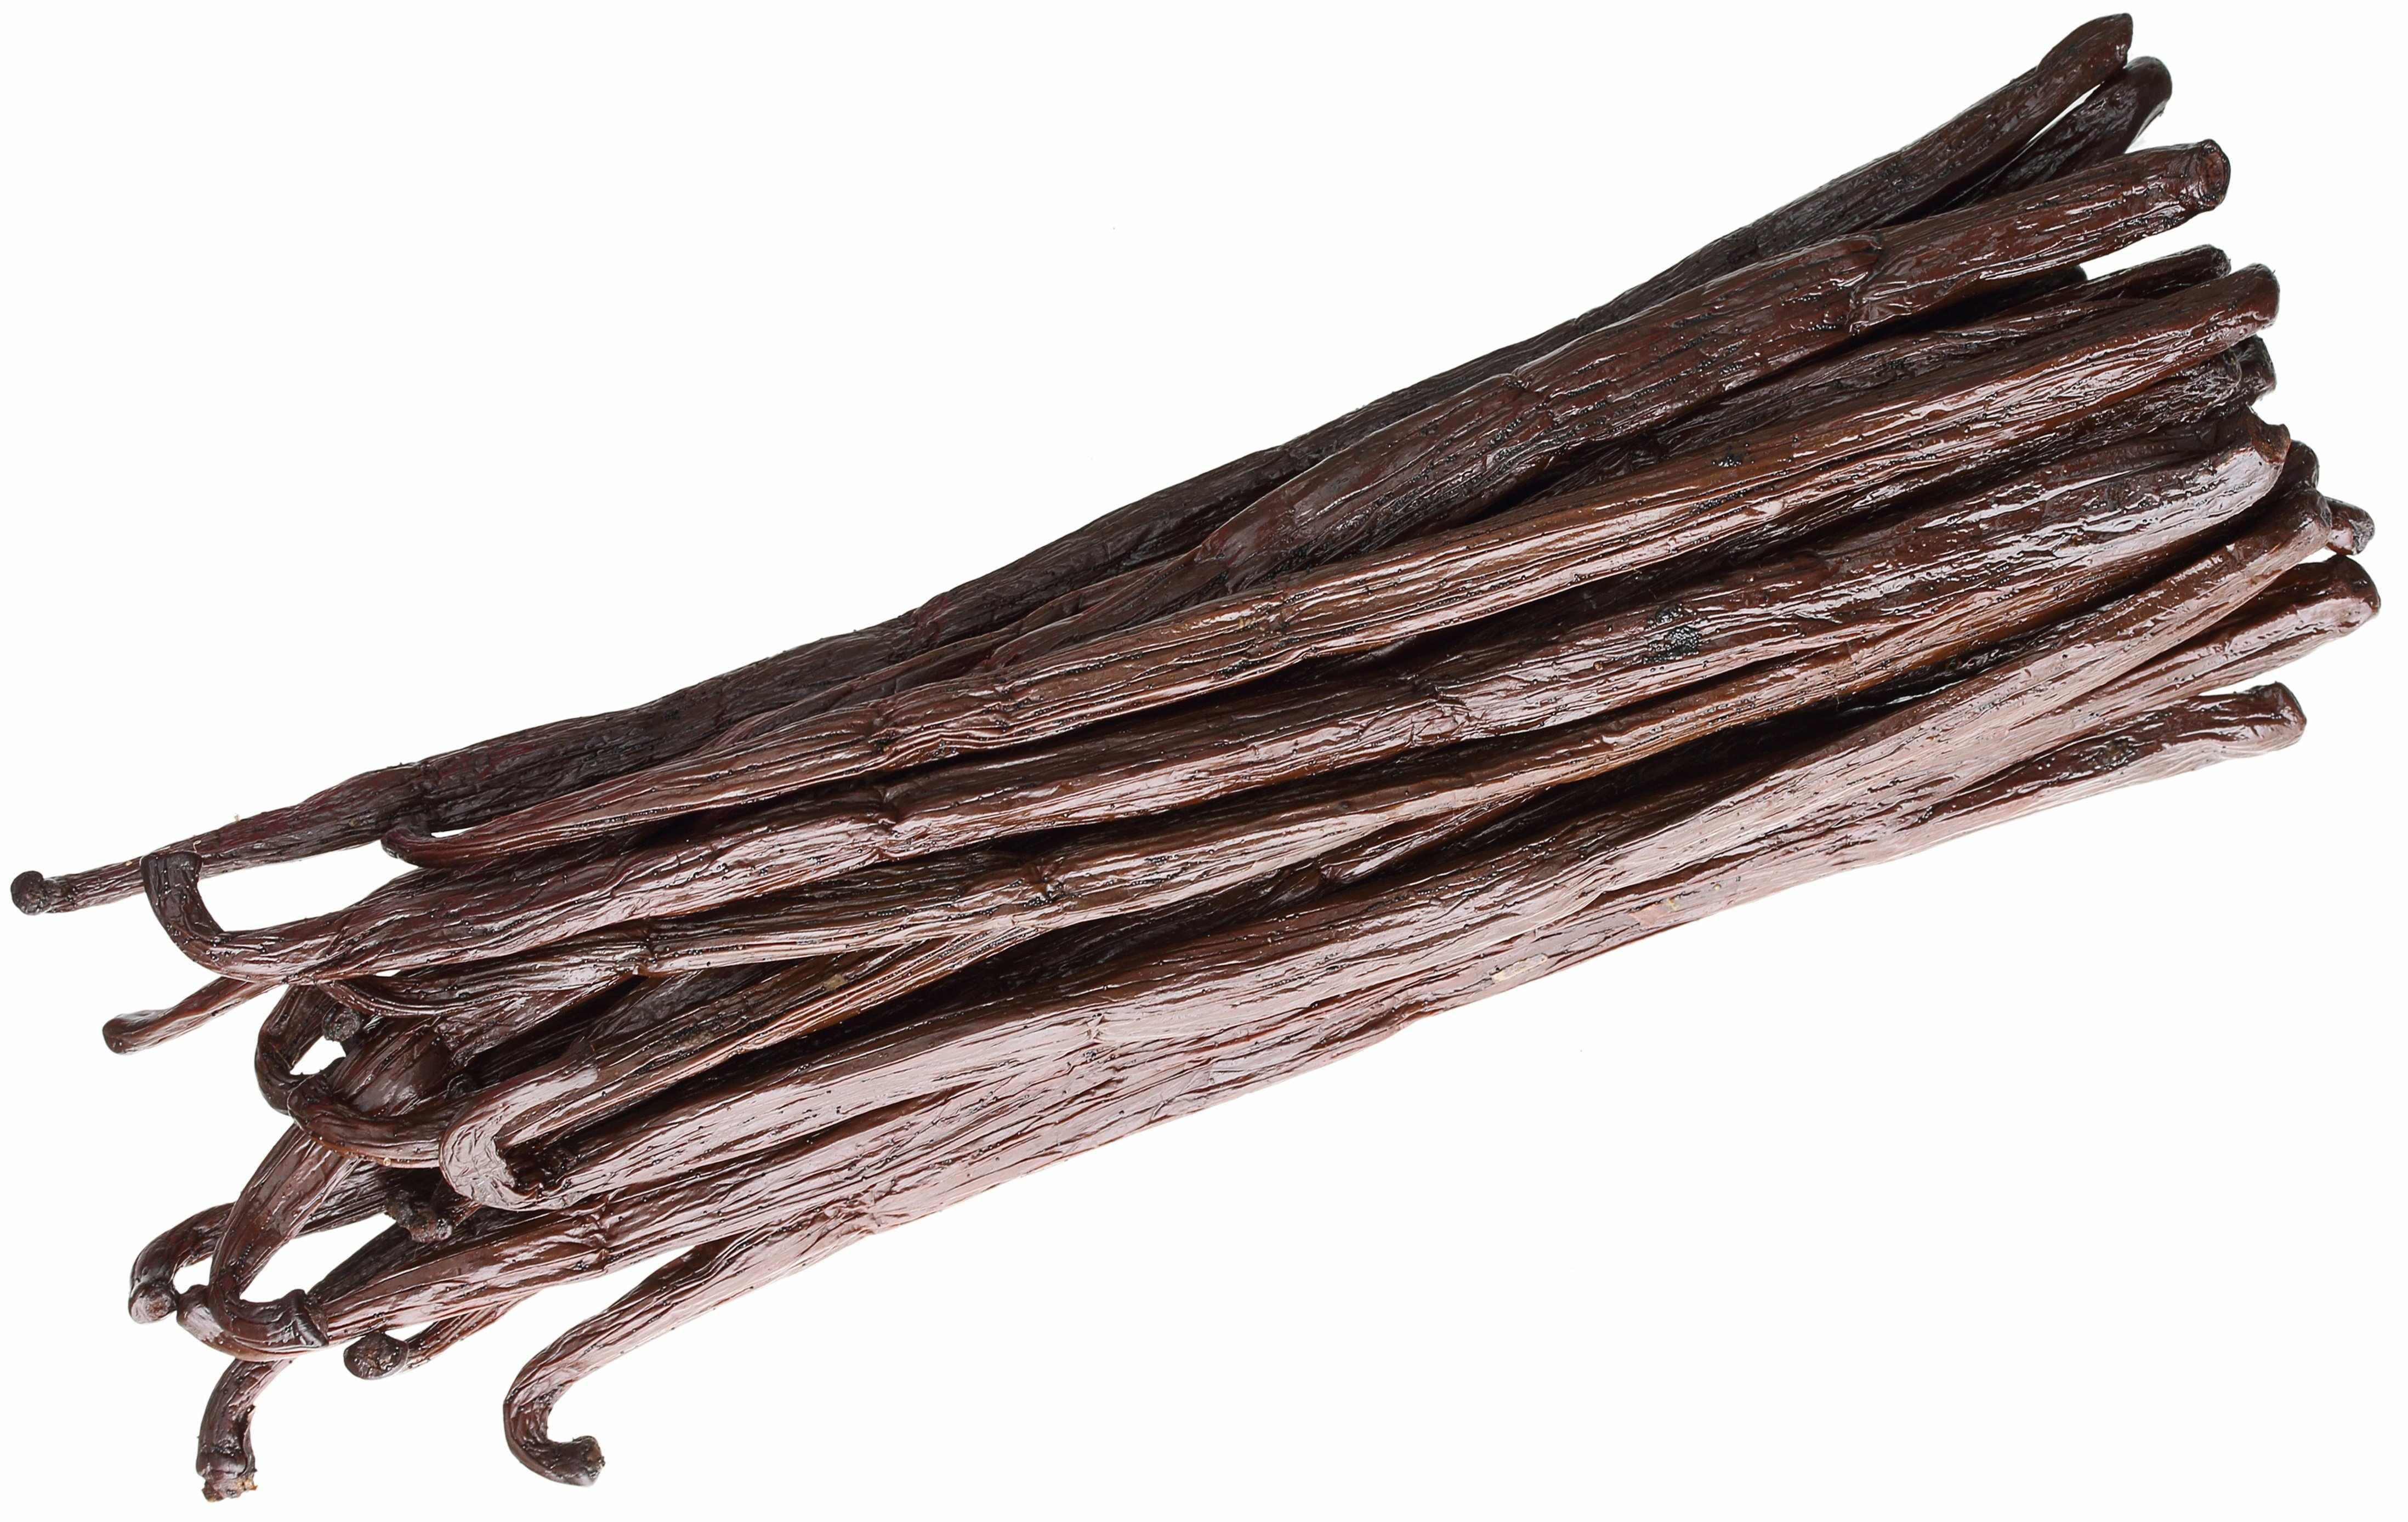 Tahitian Vanilla Beans - Whole Grade A Vanilla Pods for Vanilla Extract and Baking - Vanilla Bean Kings